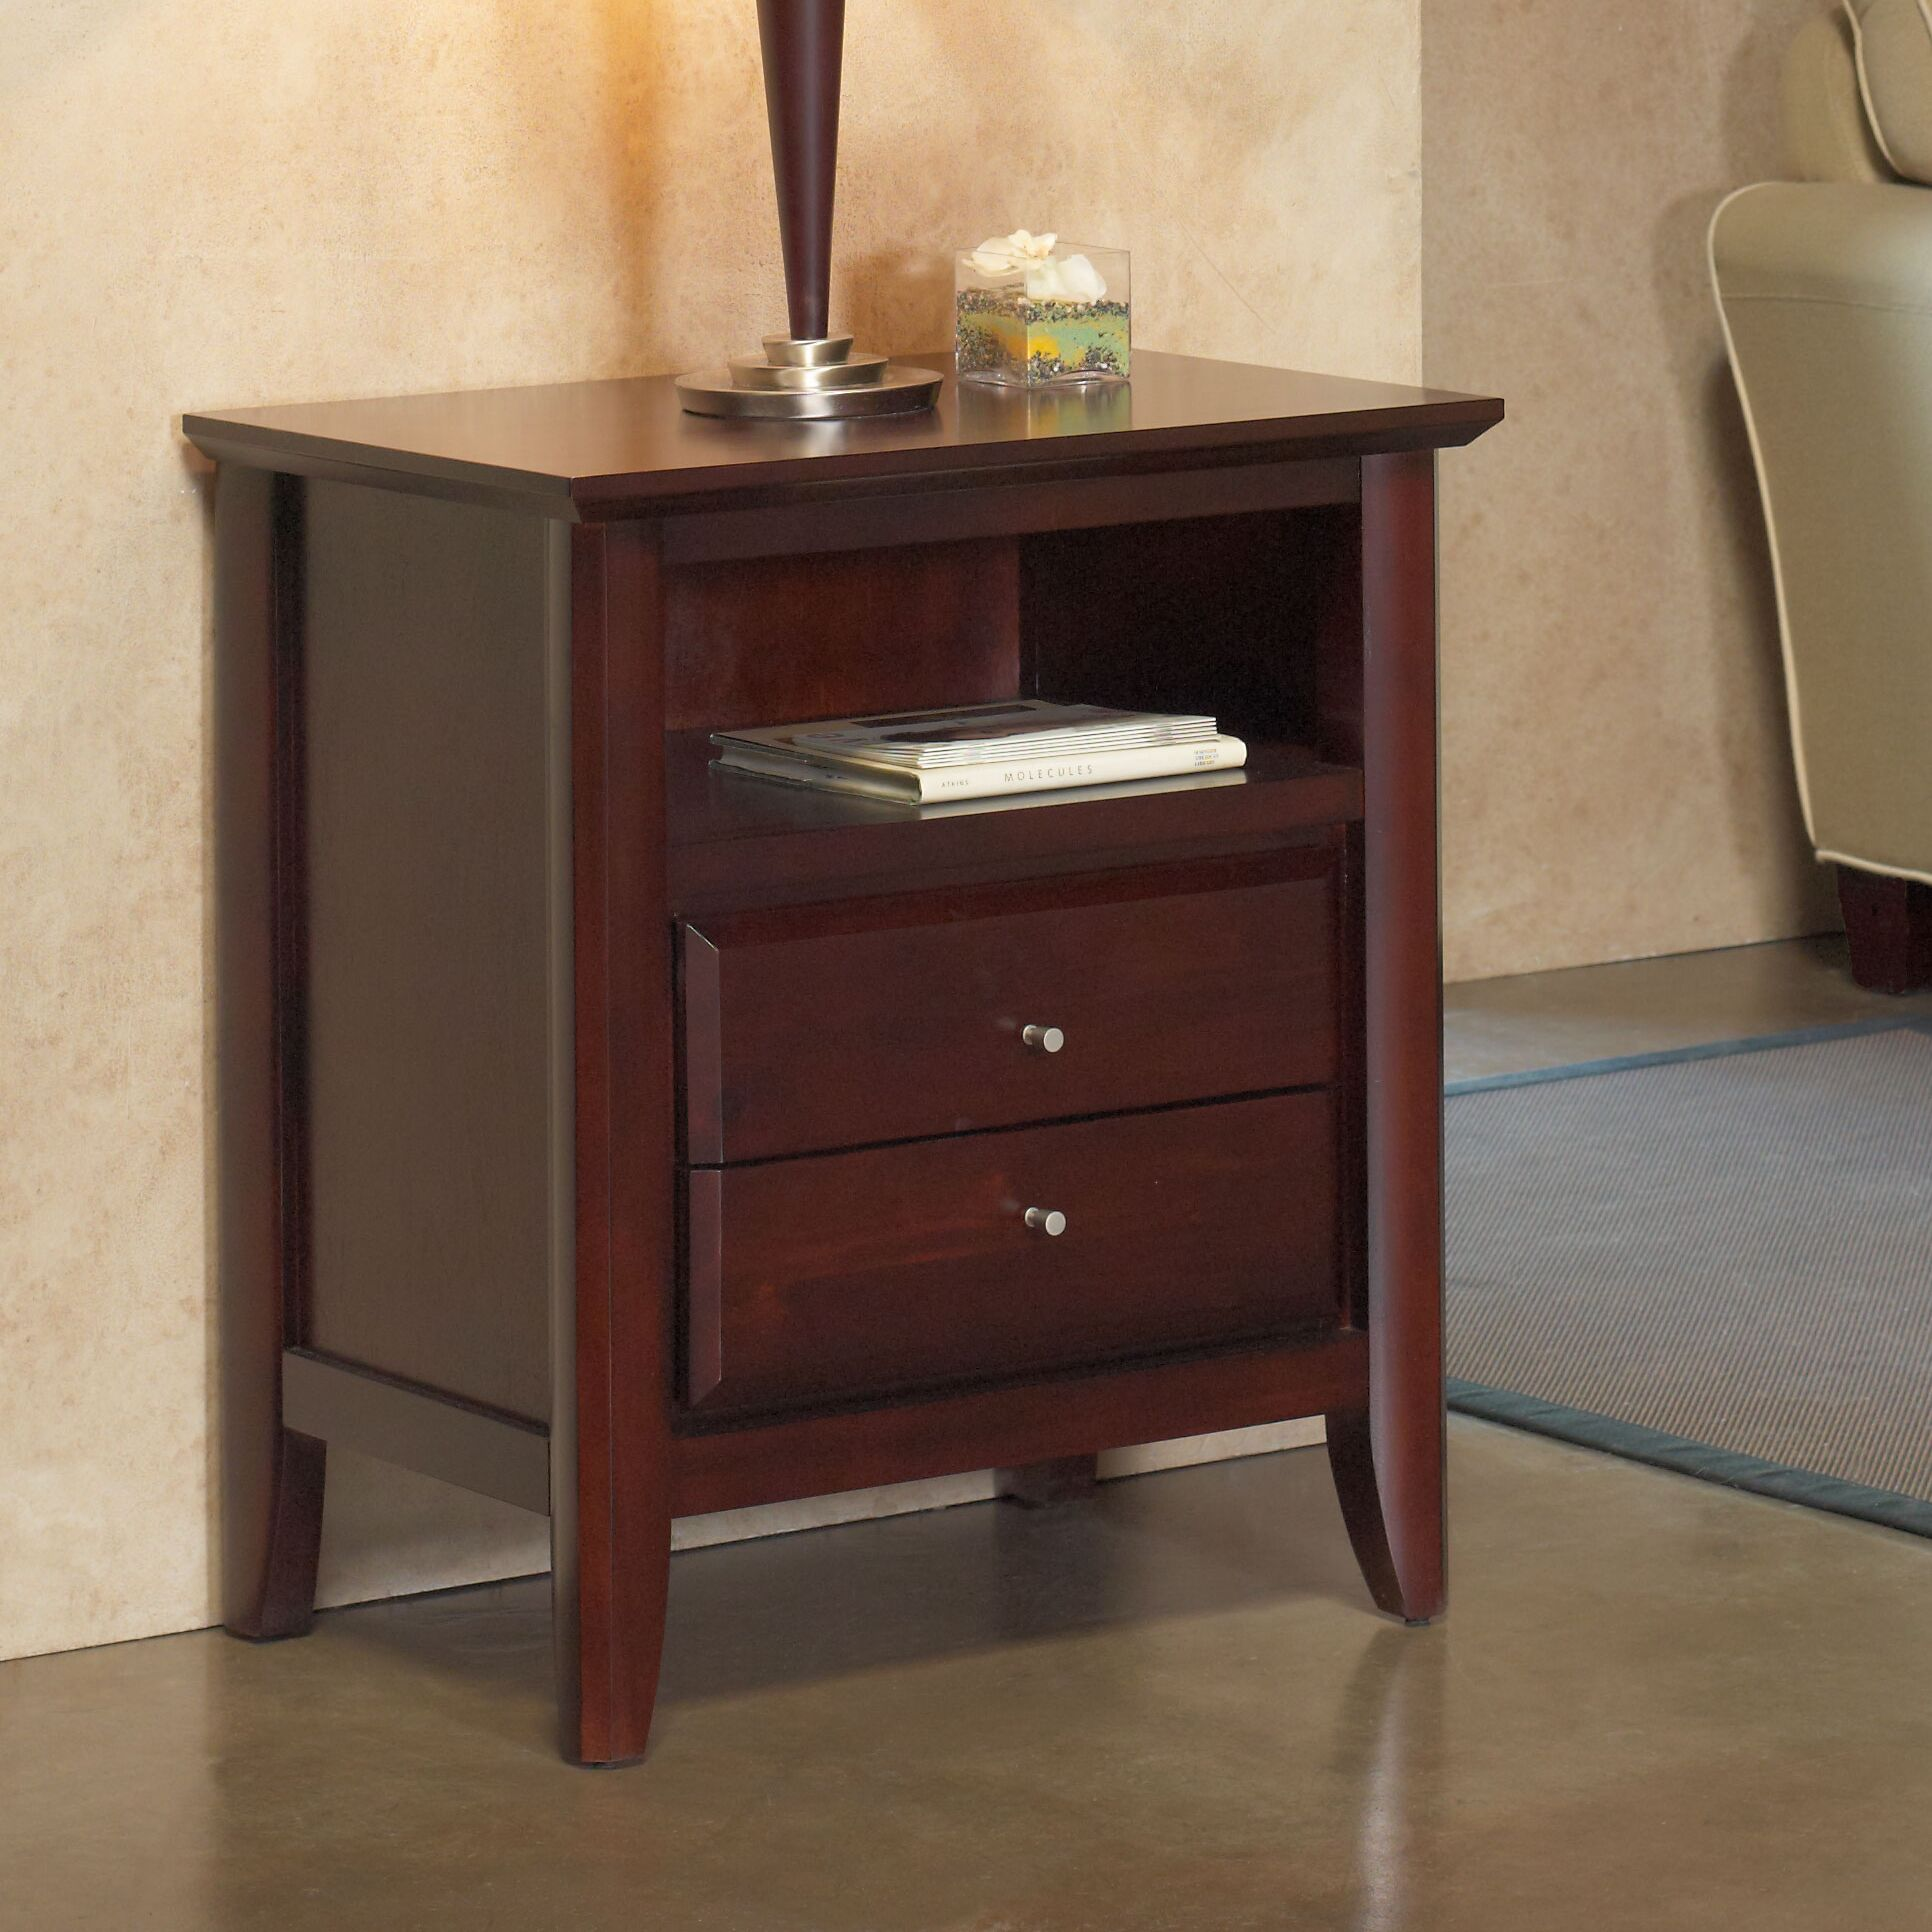 Hudson 2 Drawer Nightstand Color: Coco, Charging Station: Included